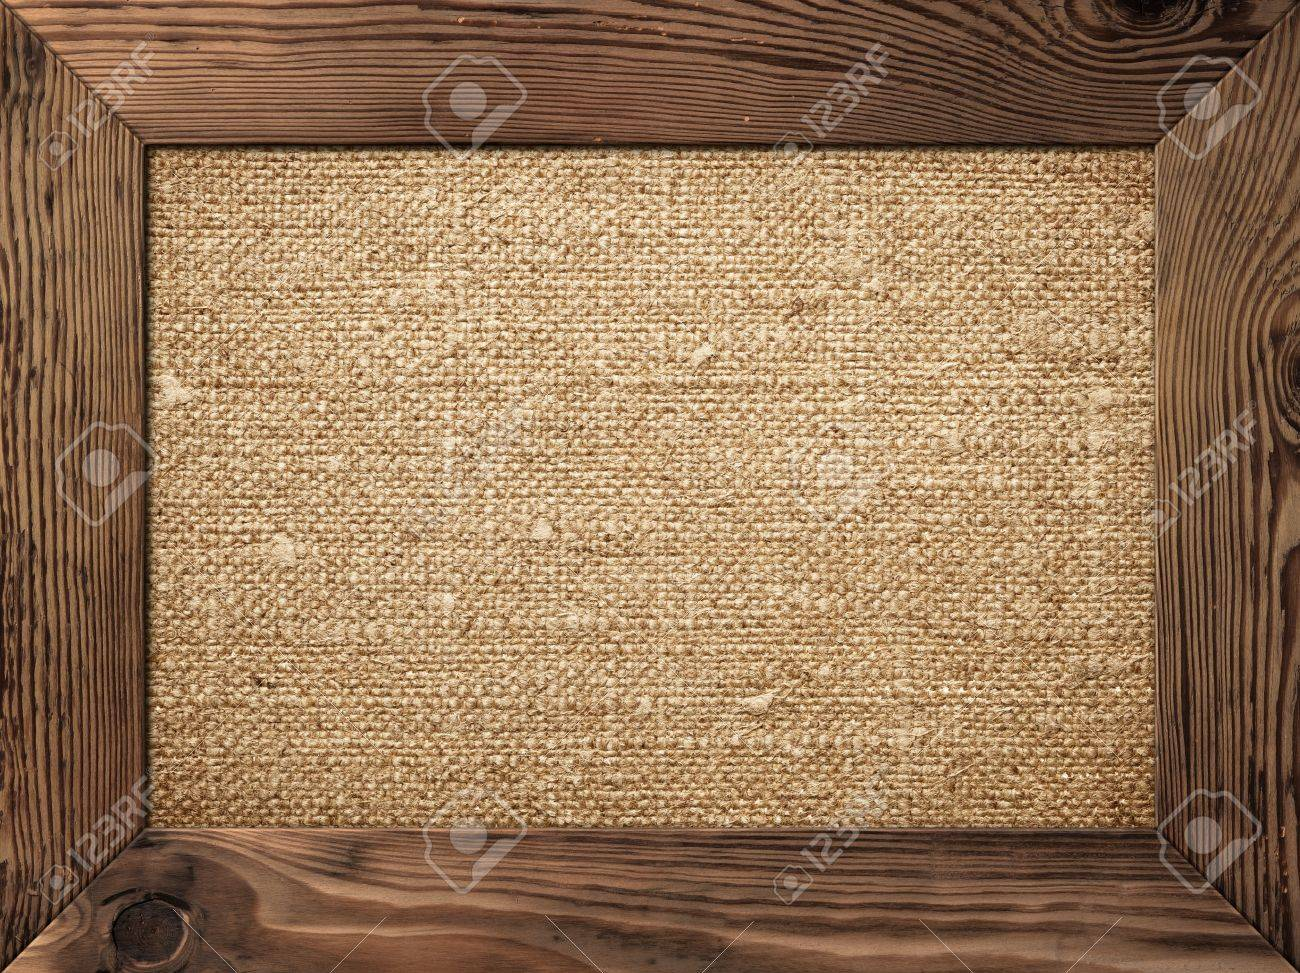 Old wooden frame with cotton canvas inside Stock Photo - 17815442 1040241341895